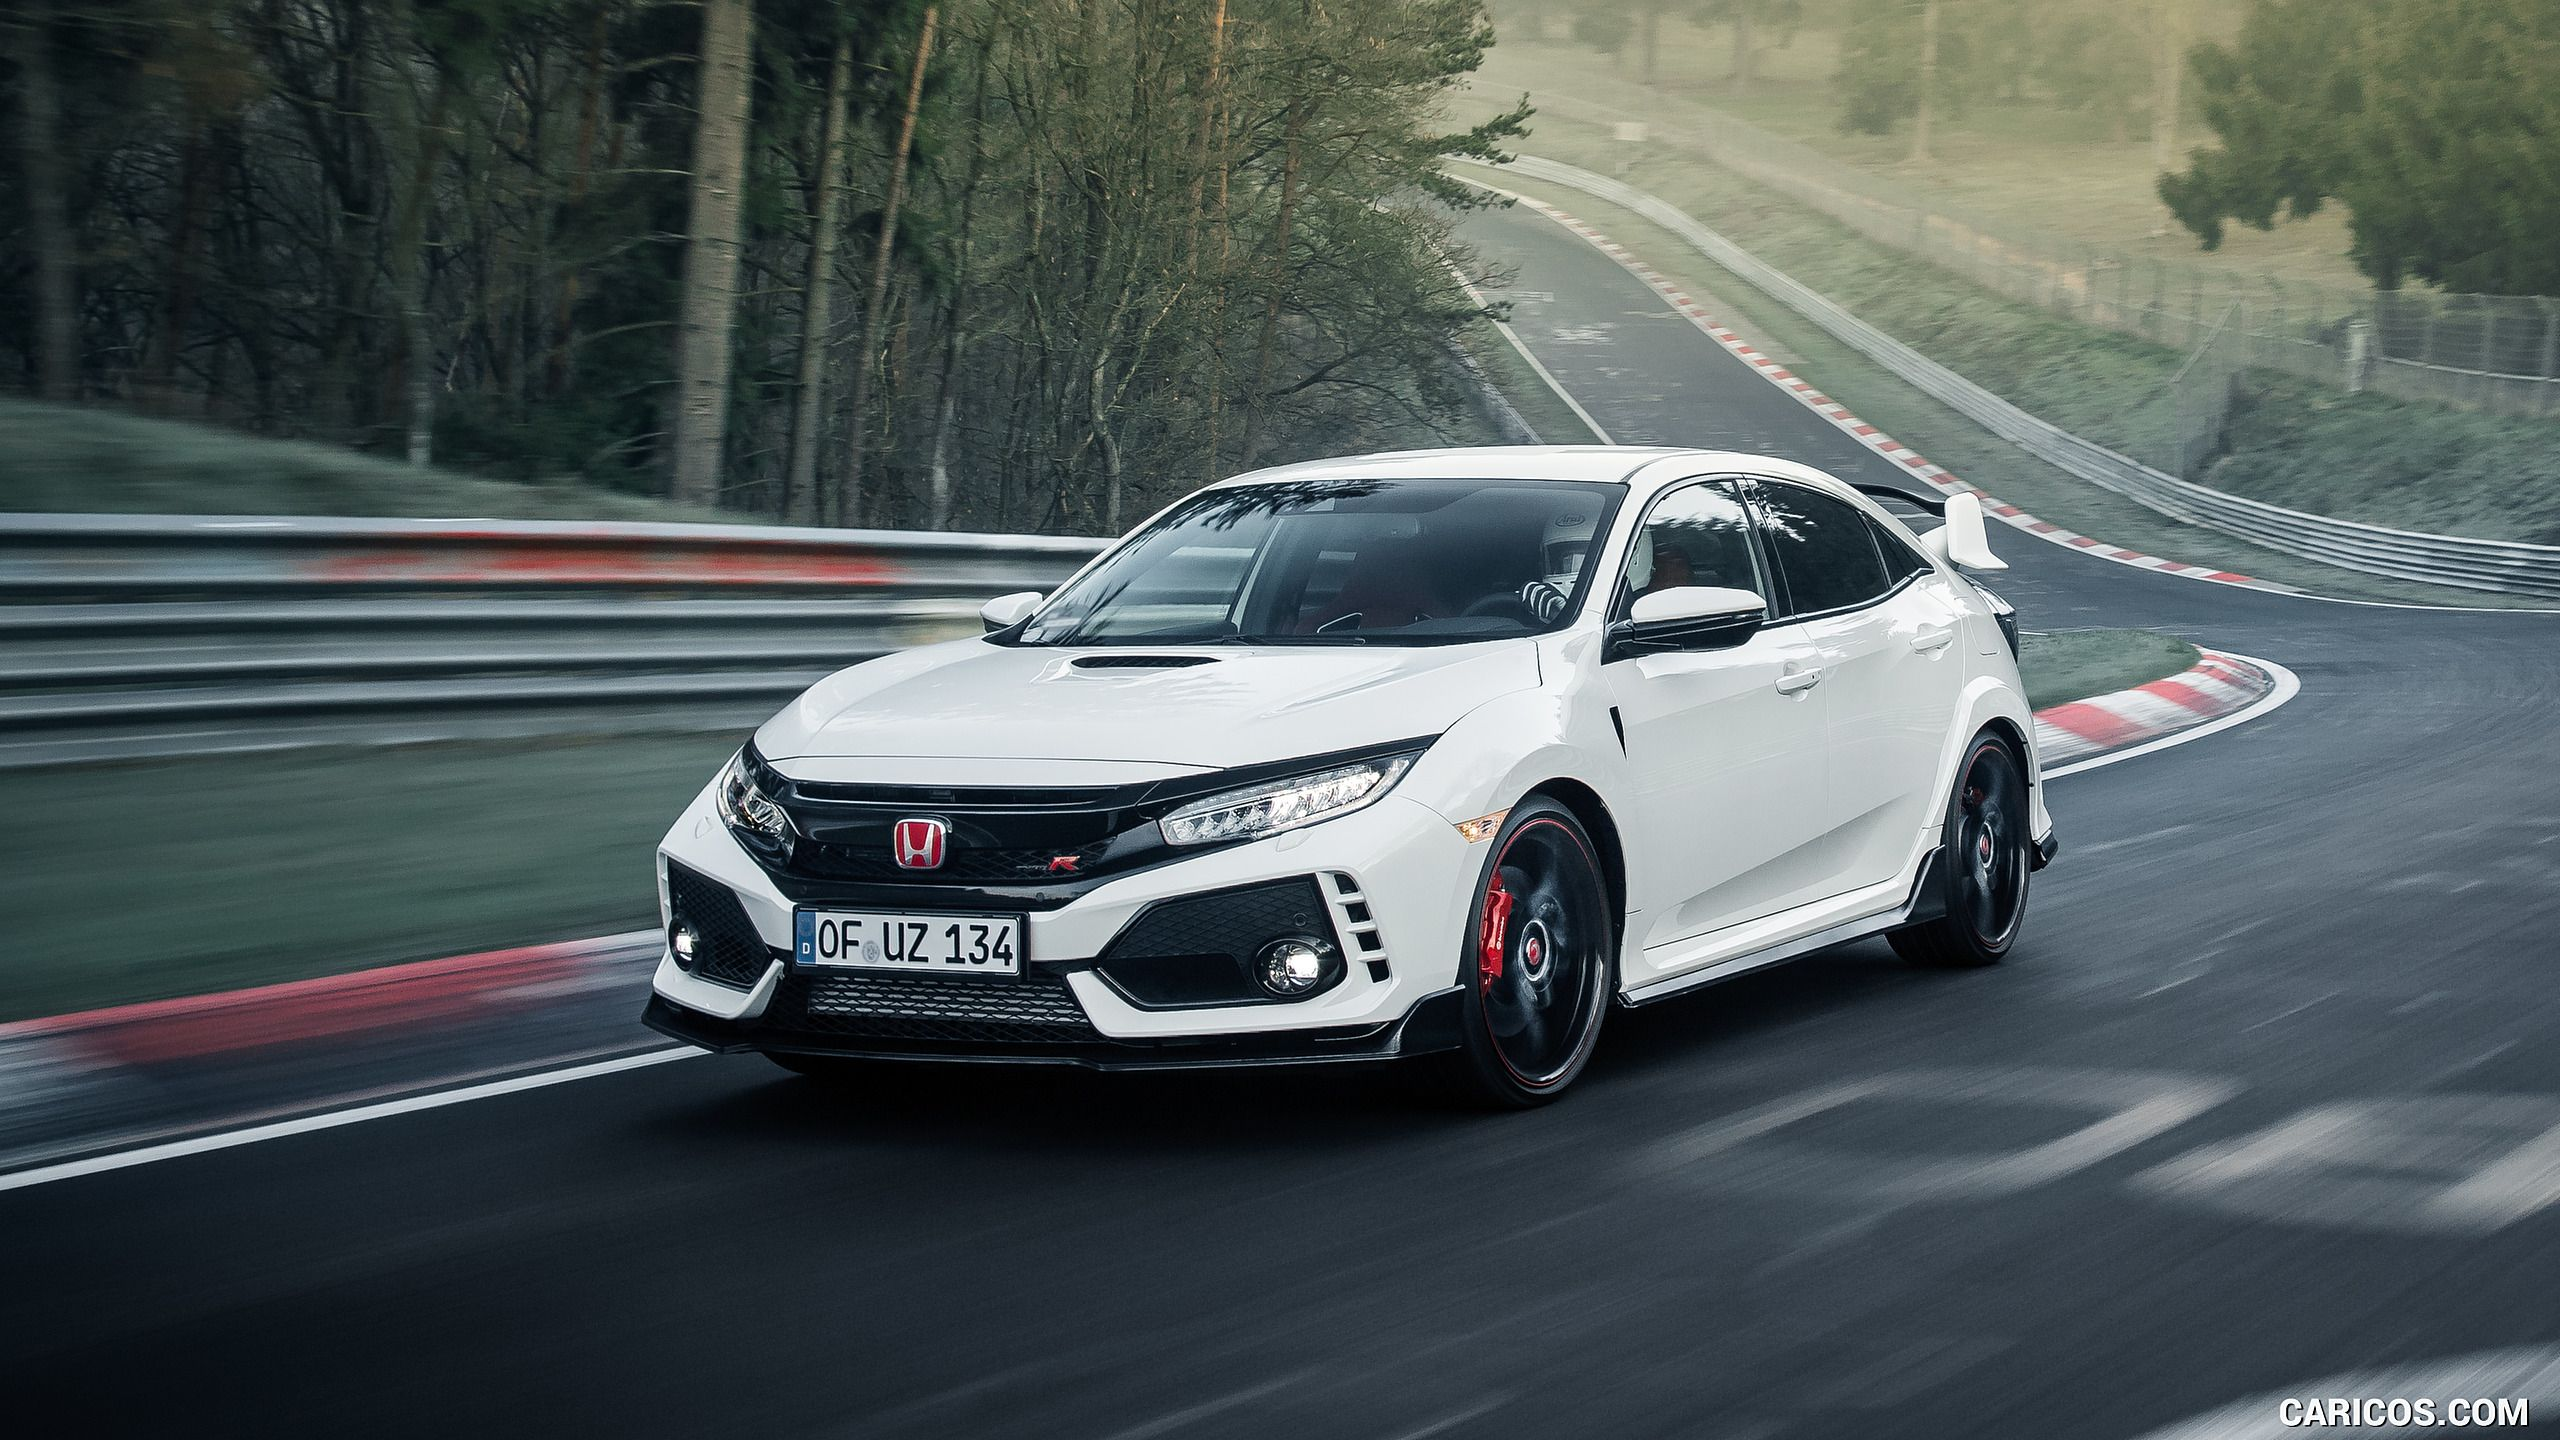 Honda Civic Type R Wallpaper High Quality Resolution 1iq Cars